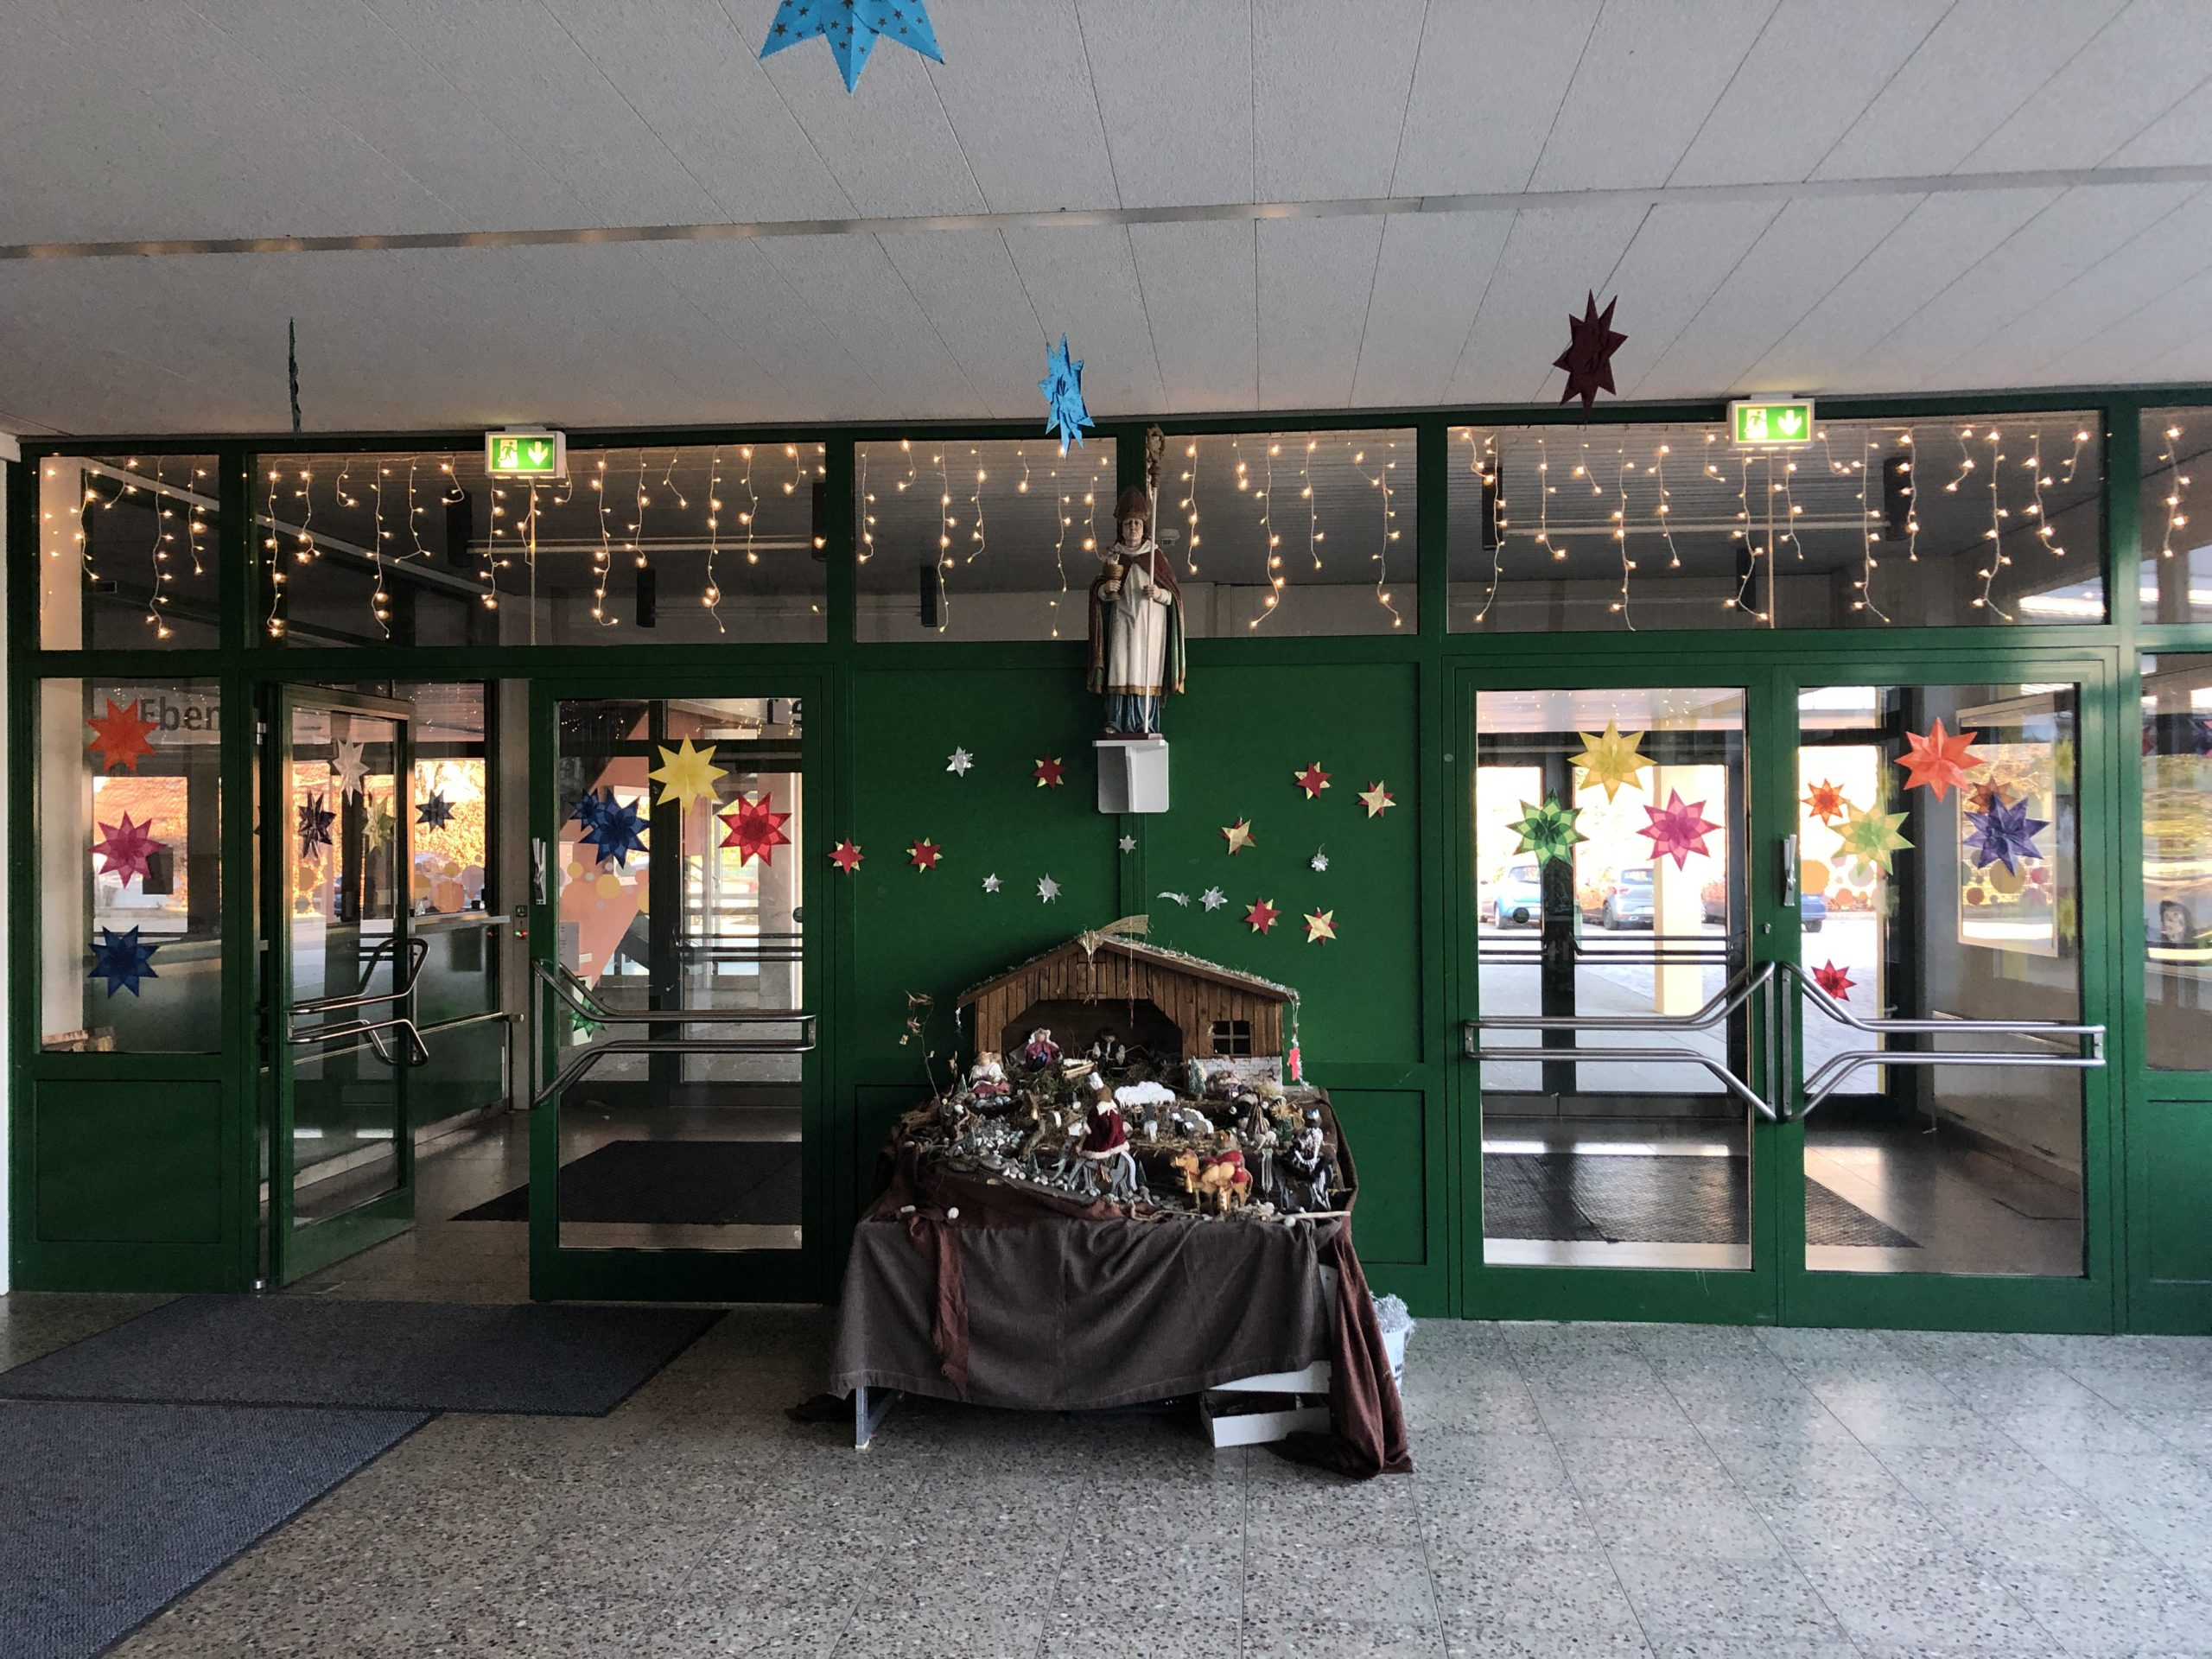 Advent in der Aula